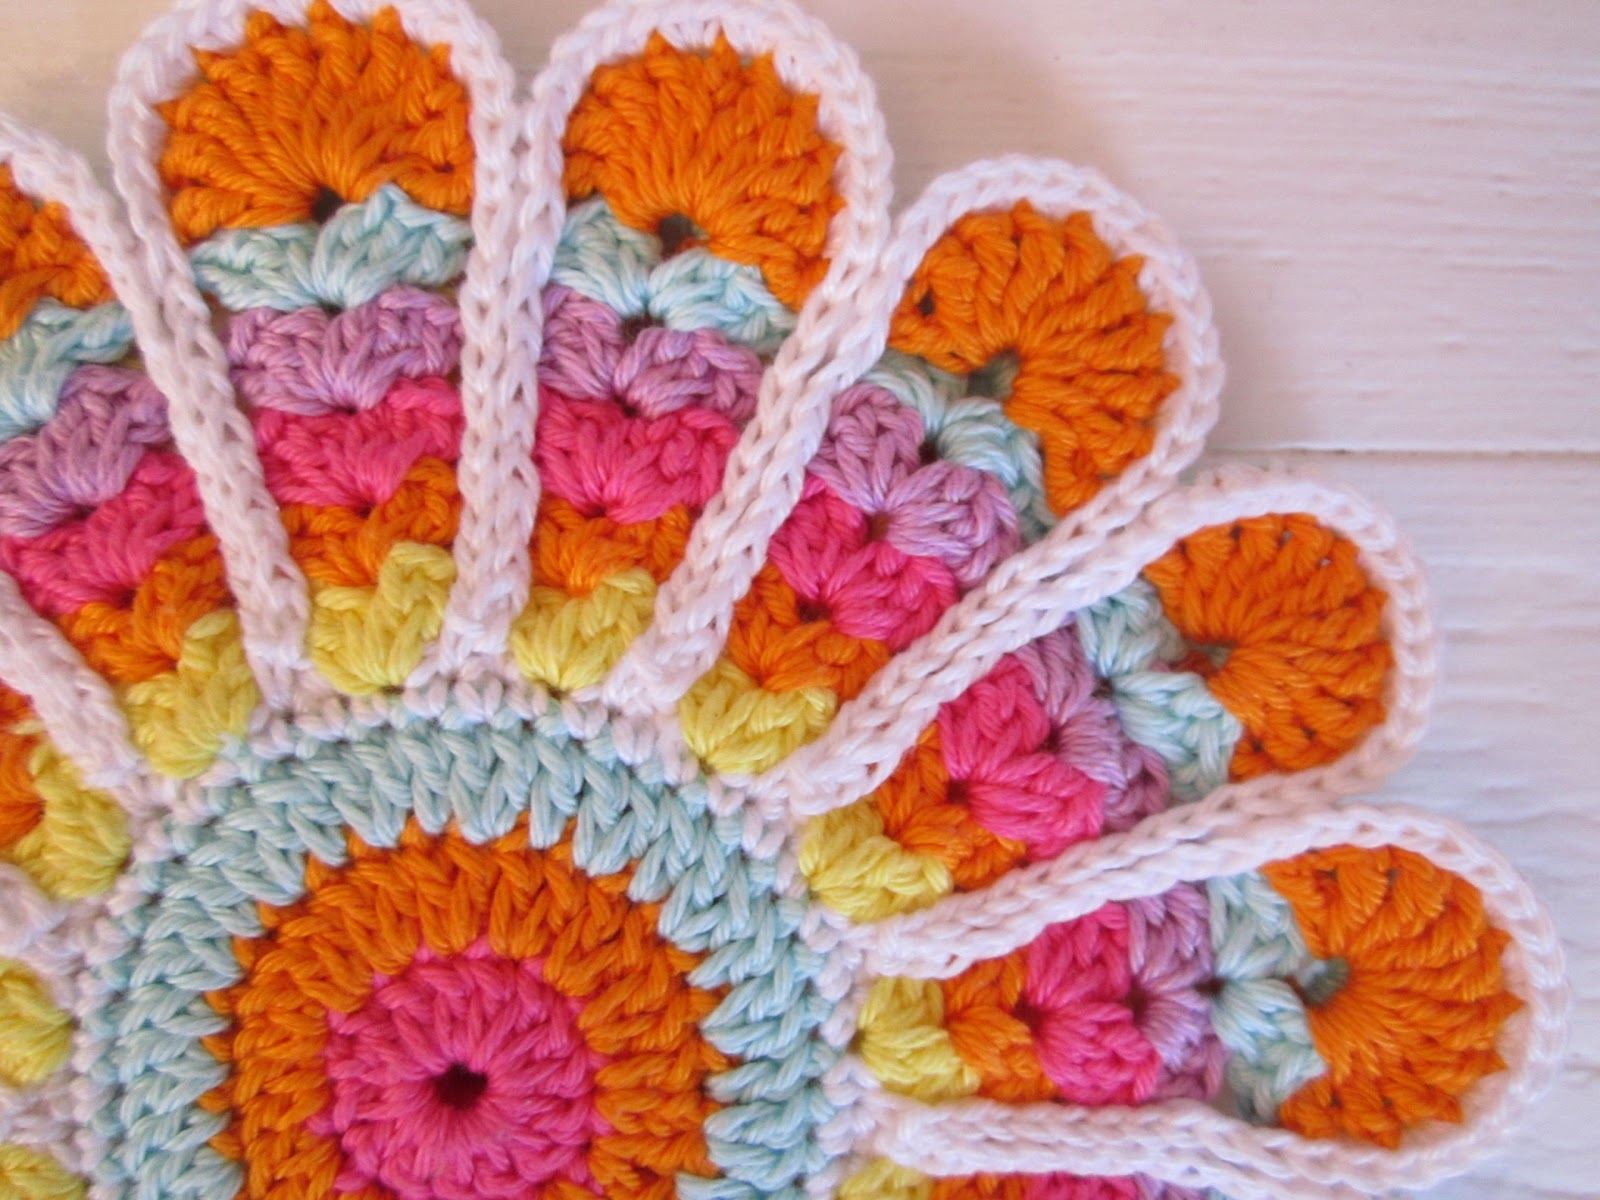 Crochet Patterns Video Tutorial : Color n Cream Crochet and Dream: Tutorial Vintage Flower Potholder